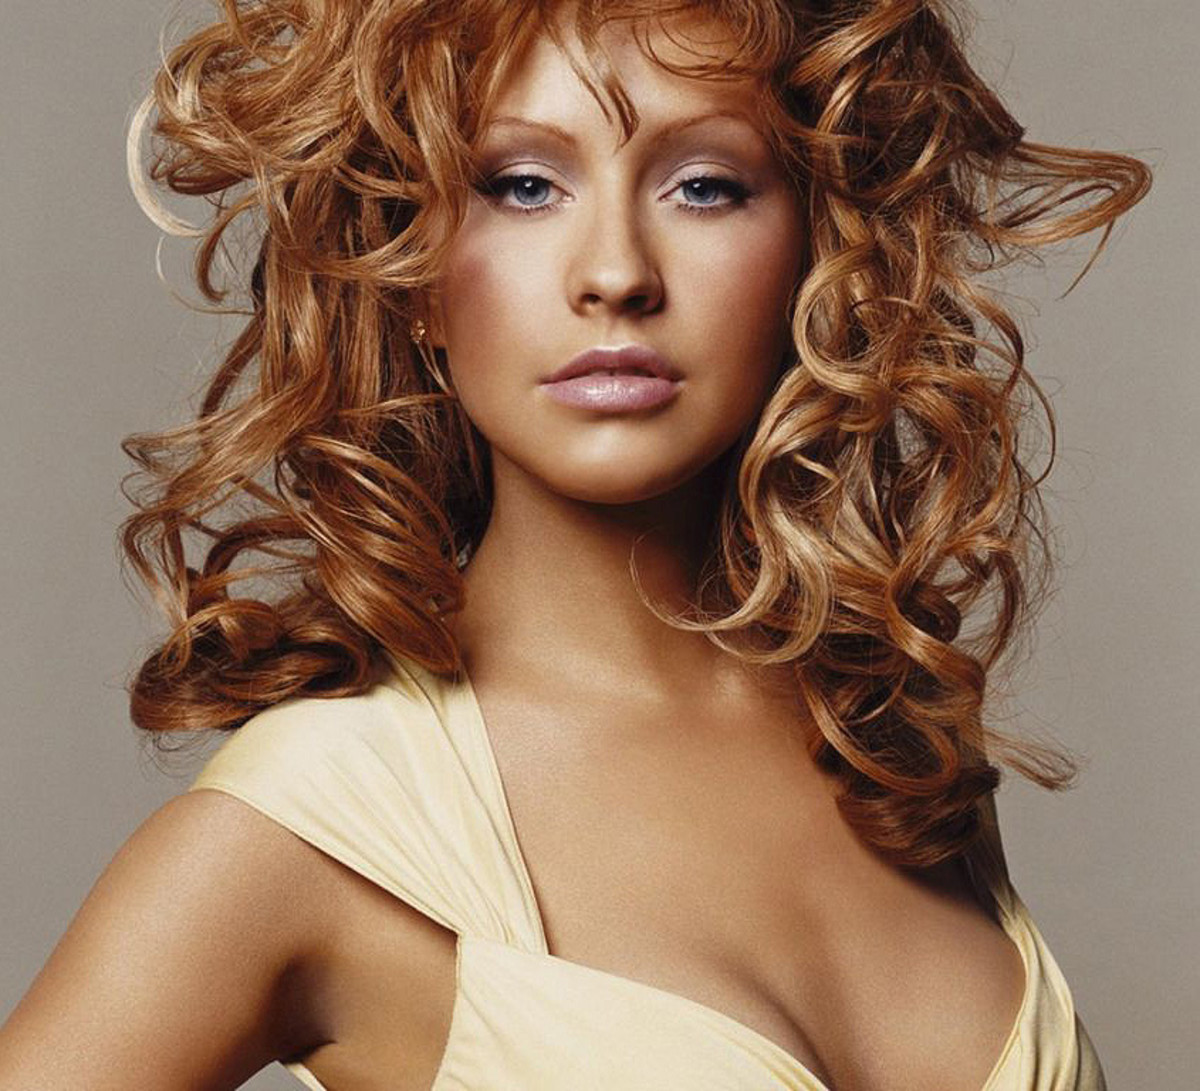 Christina Aguilera with a spray-bronze tan and copper-and-blonde curls, 2004?